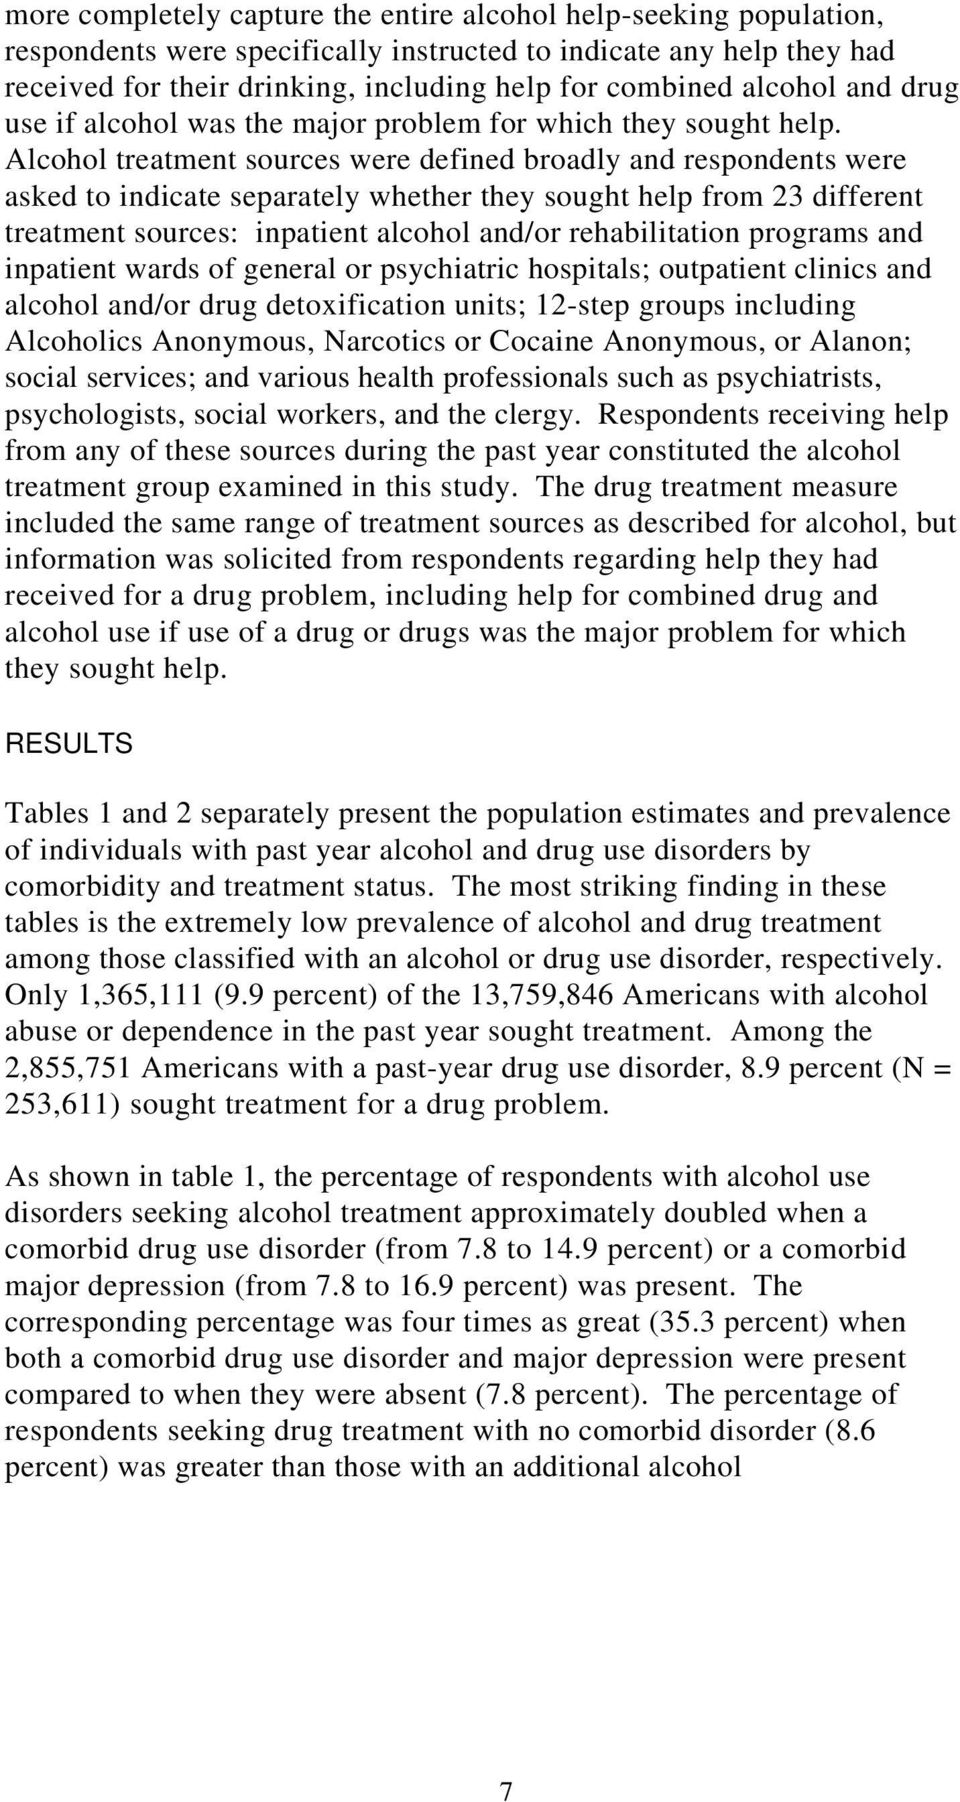 Alcohol treatment sources were defined broadly and respondents were asked to indicate separately whether they sought help from 23 different treatment sources: inpatient alcohol and/or rehabilitation